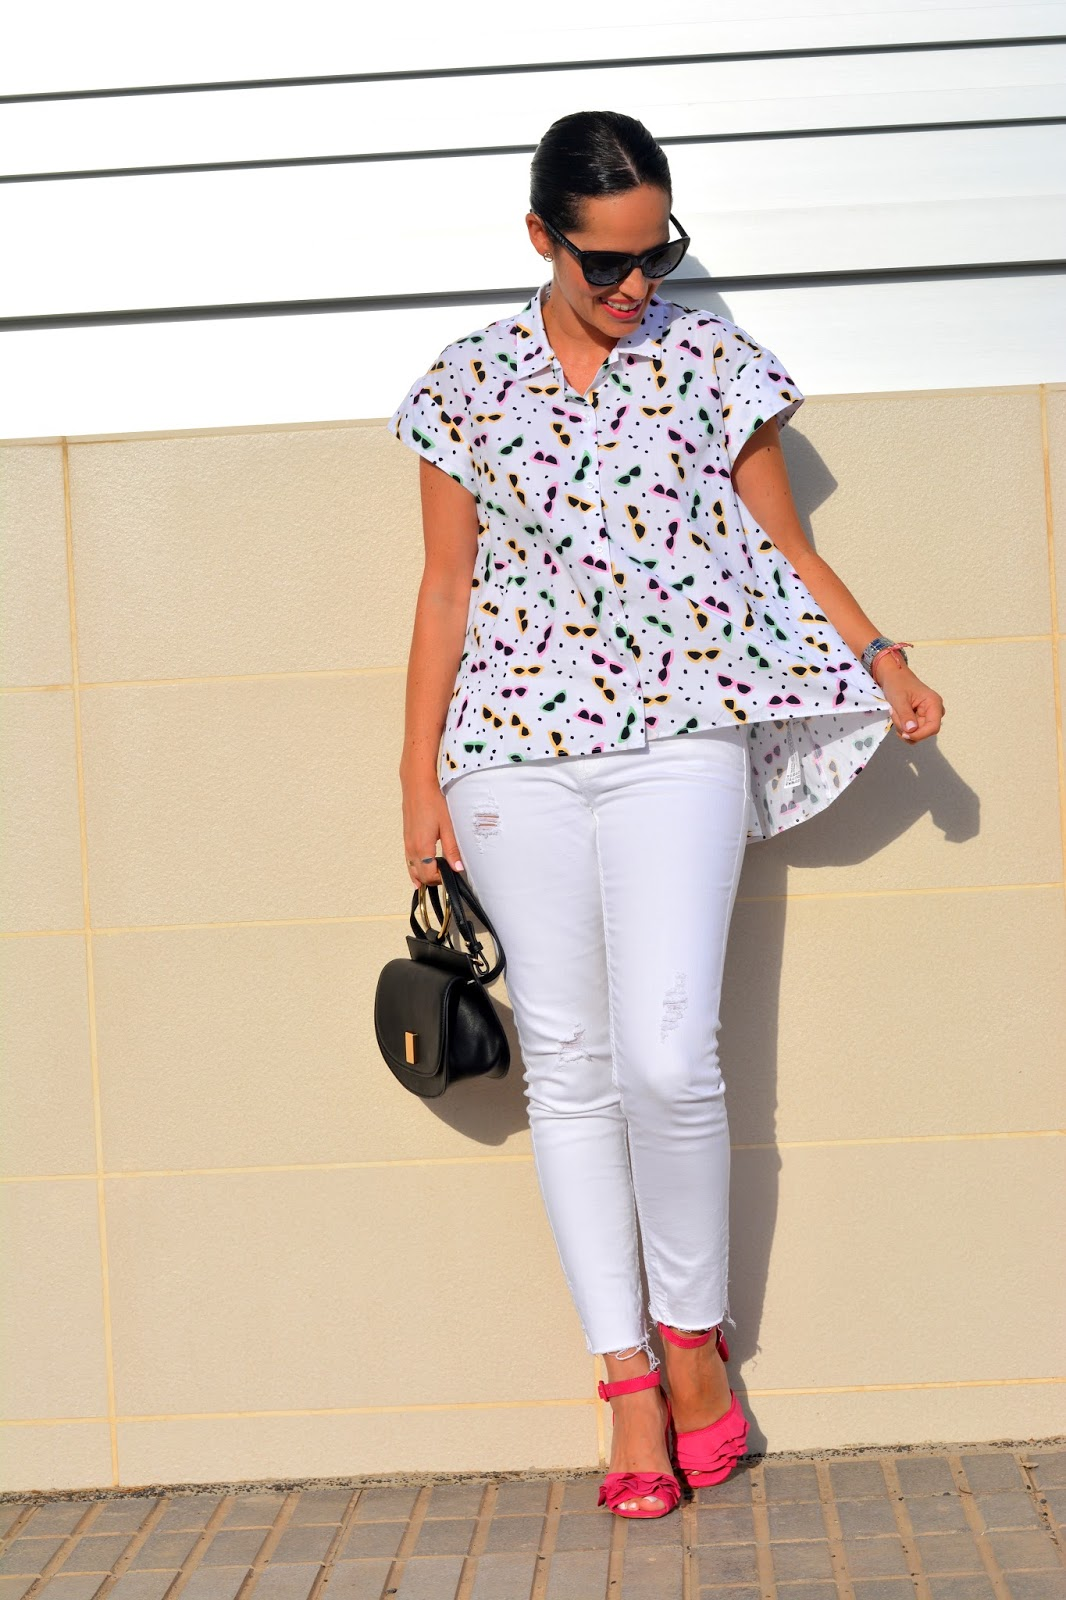 zara-sunglasses-printed-shirt-outfit-daily-looks